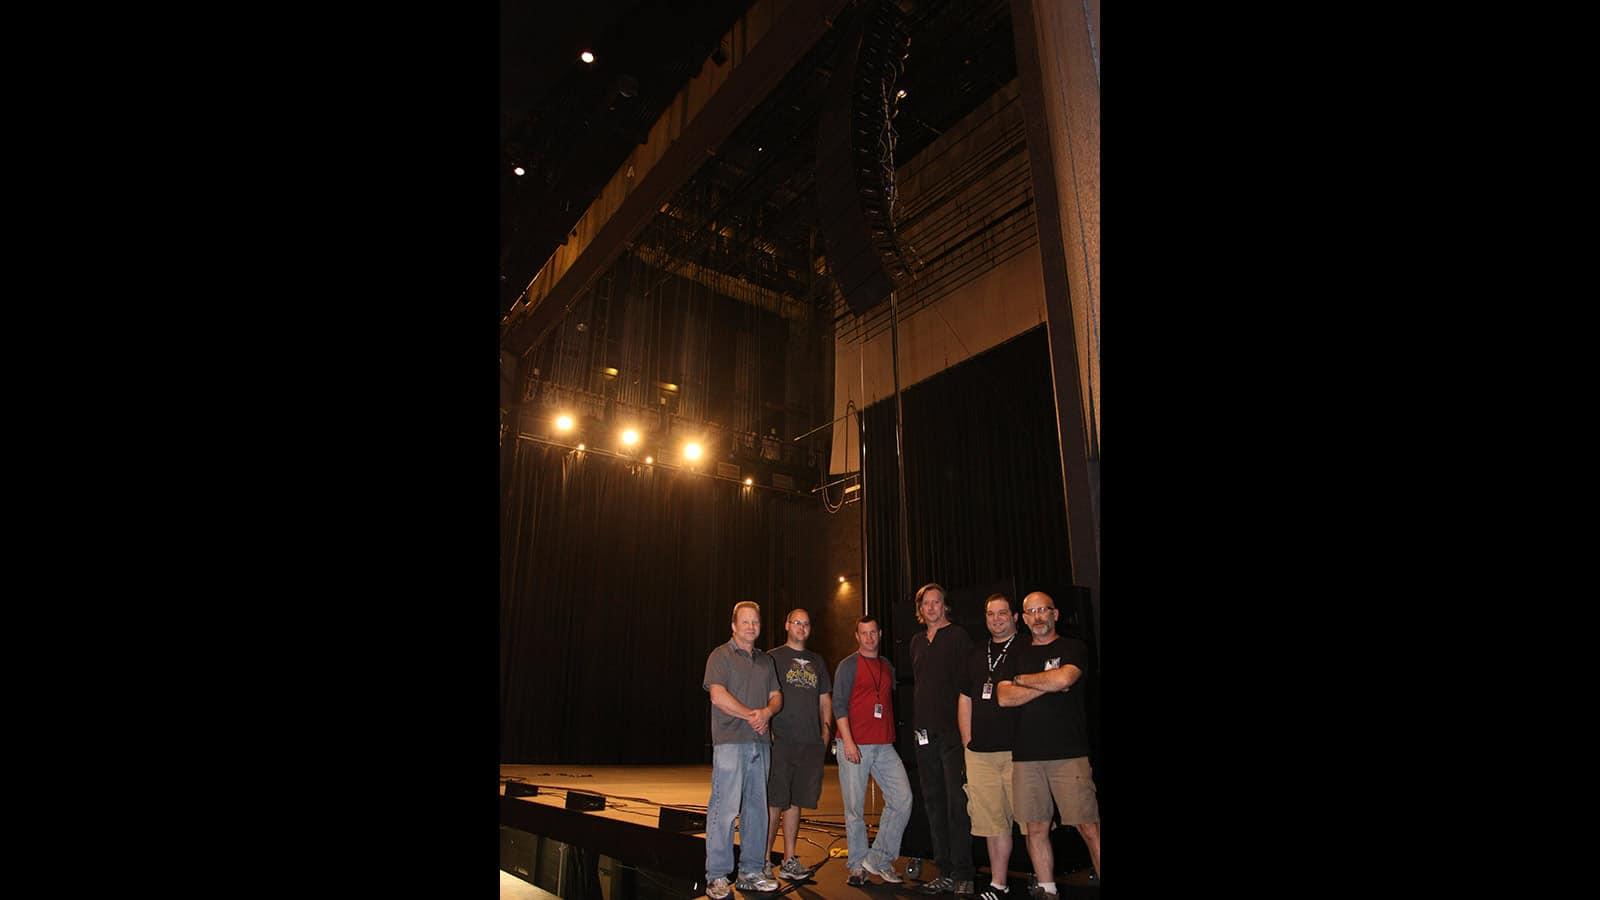 L to R: Rick Shimer, Ted Daniels (Blackhawk Audio), Ray Park (TPAC), Larry Bryan, Jeff Ent (TPAC), and Mac Whitley (TPAC)